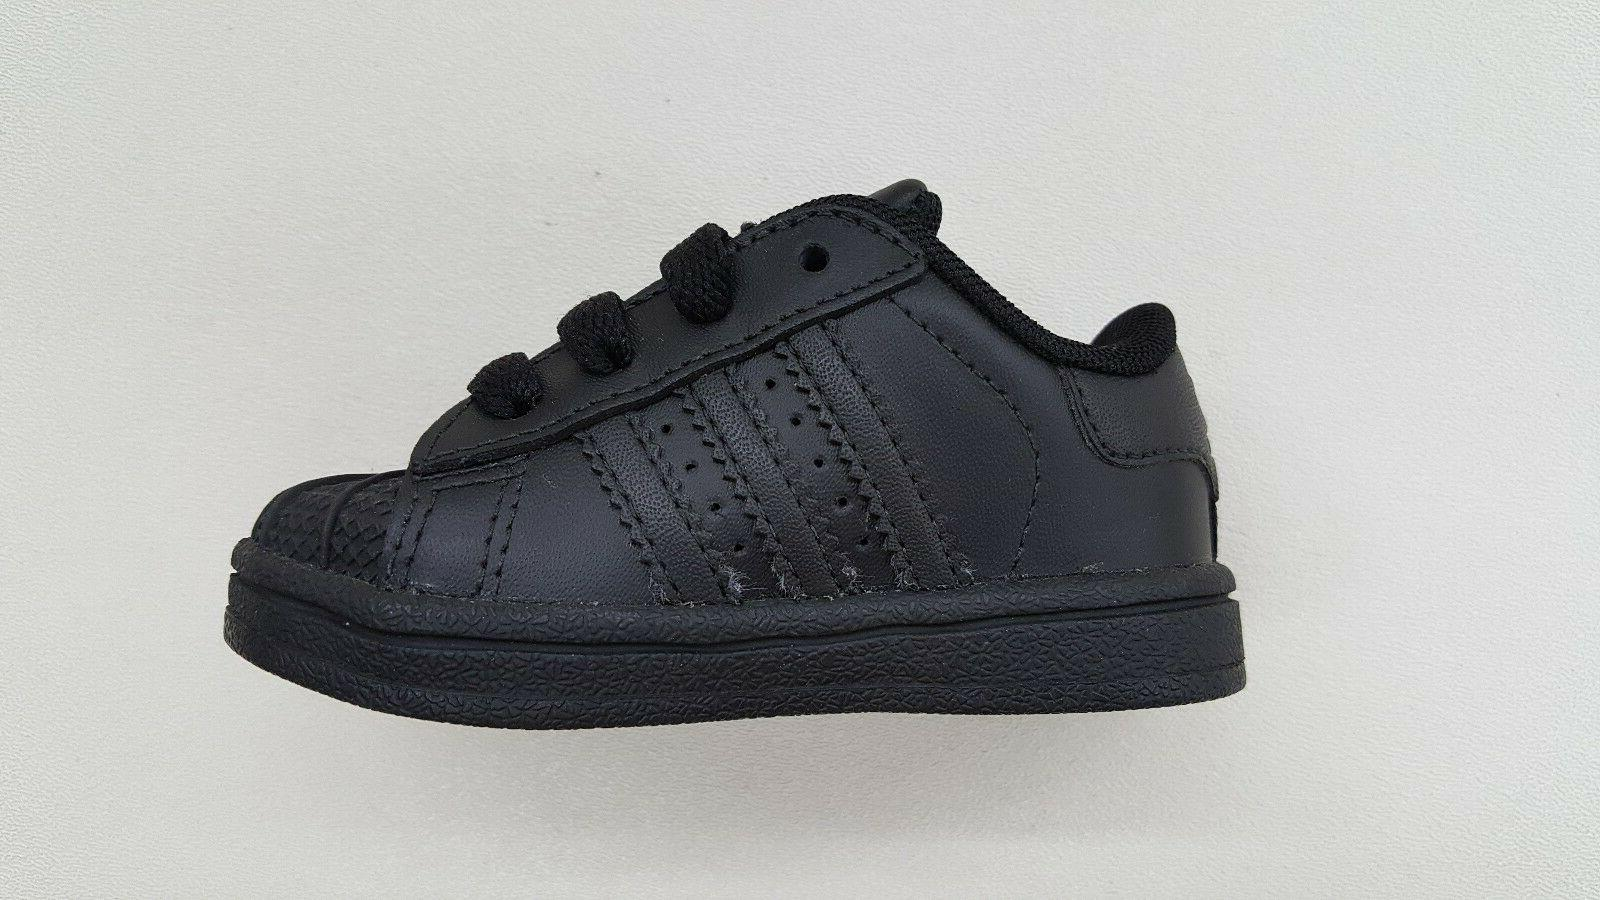 ADIDAS ORIGINALS ALL BLACK BLACK TODDLER BABY SIZE SNEAKERS D70188